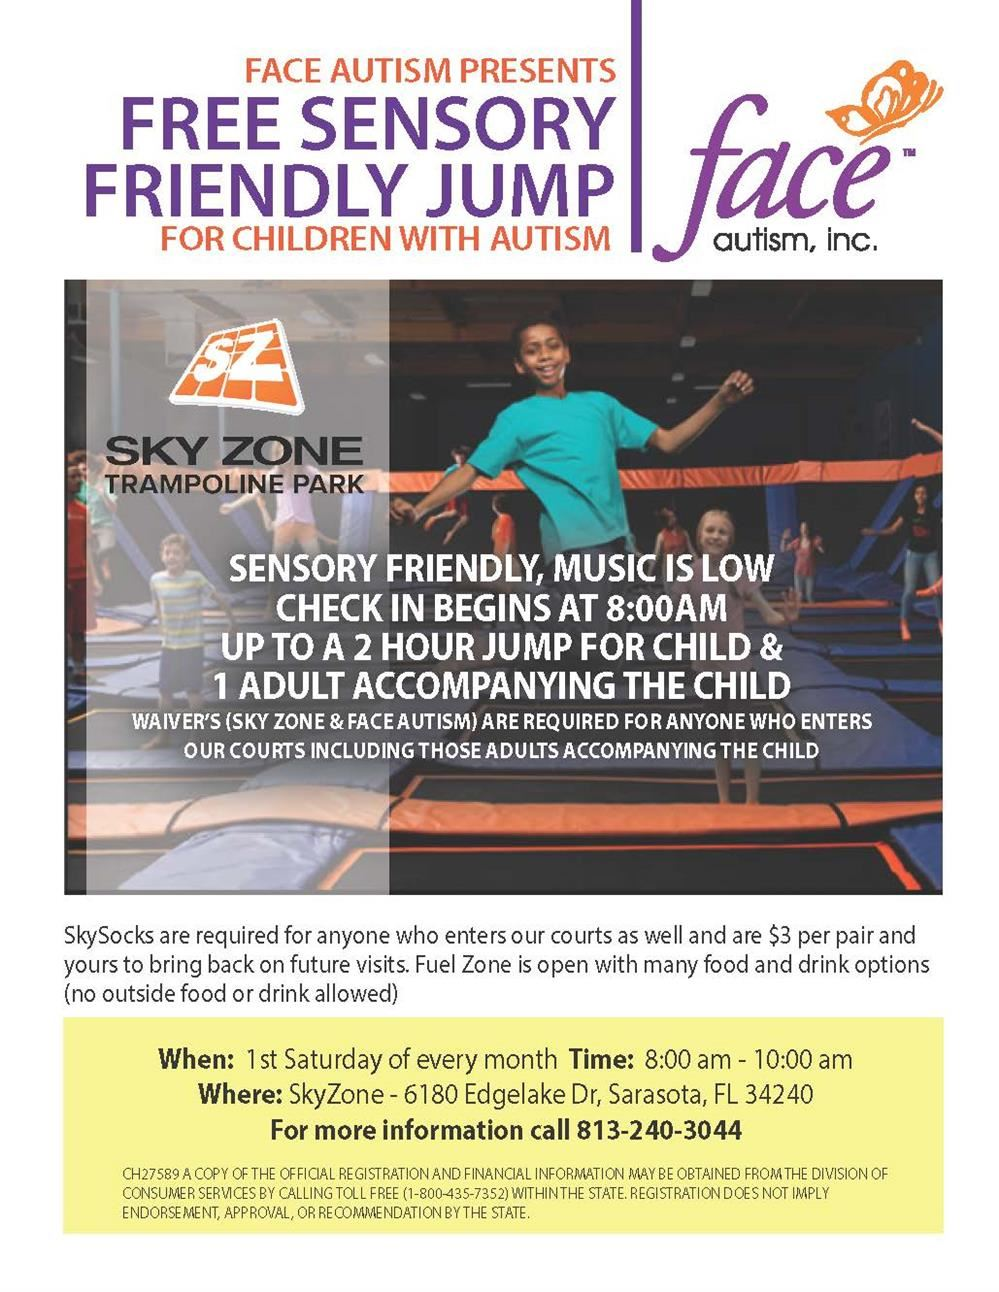 Free Sensory Friendly Jump for Children with Autism and their Family